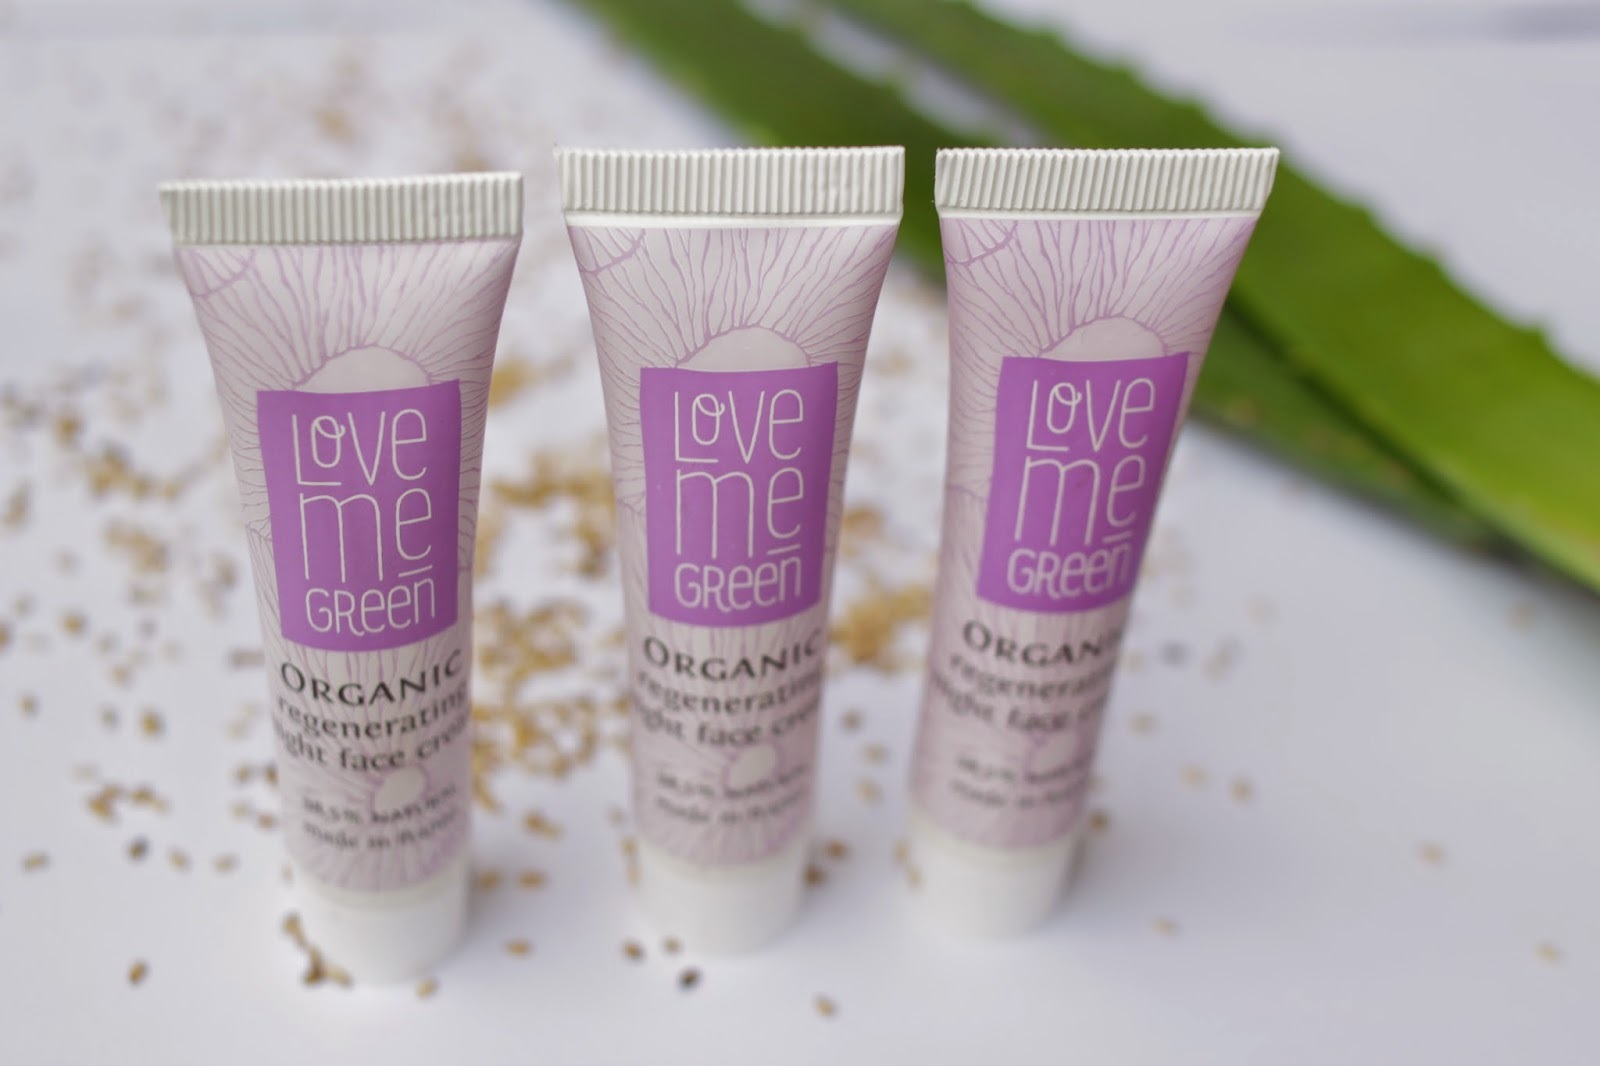 Love me Green Organic Regeneration Night face Cream 3 Proben je 15ml